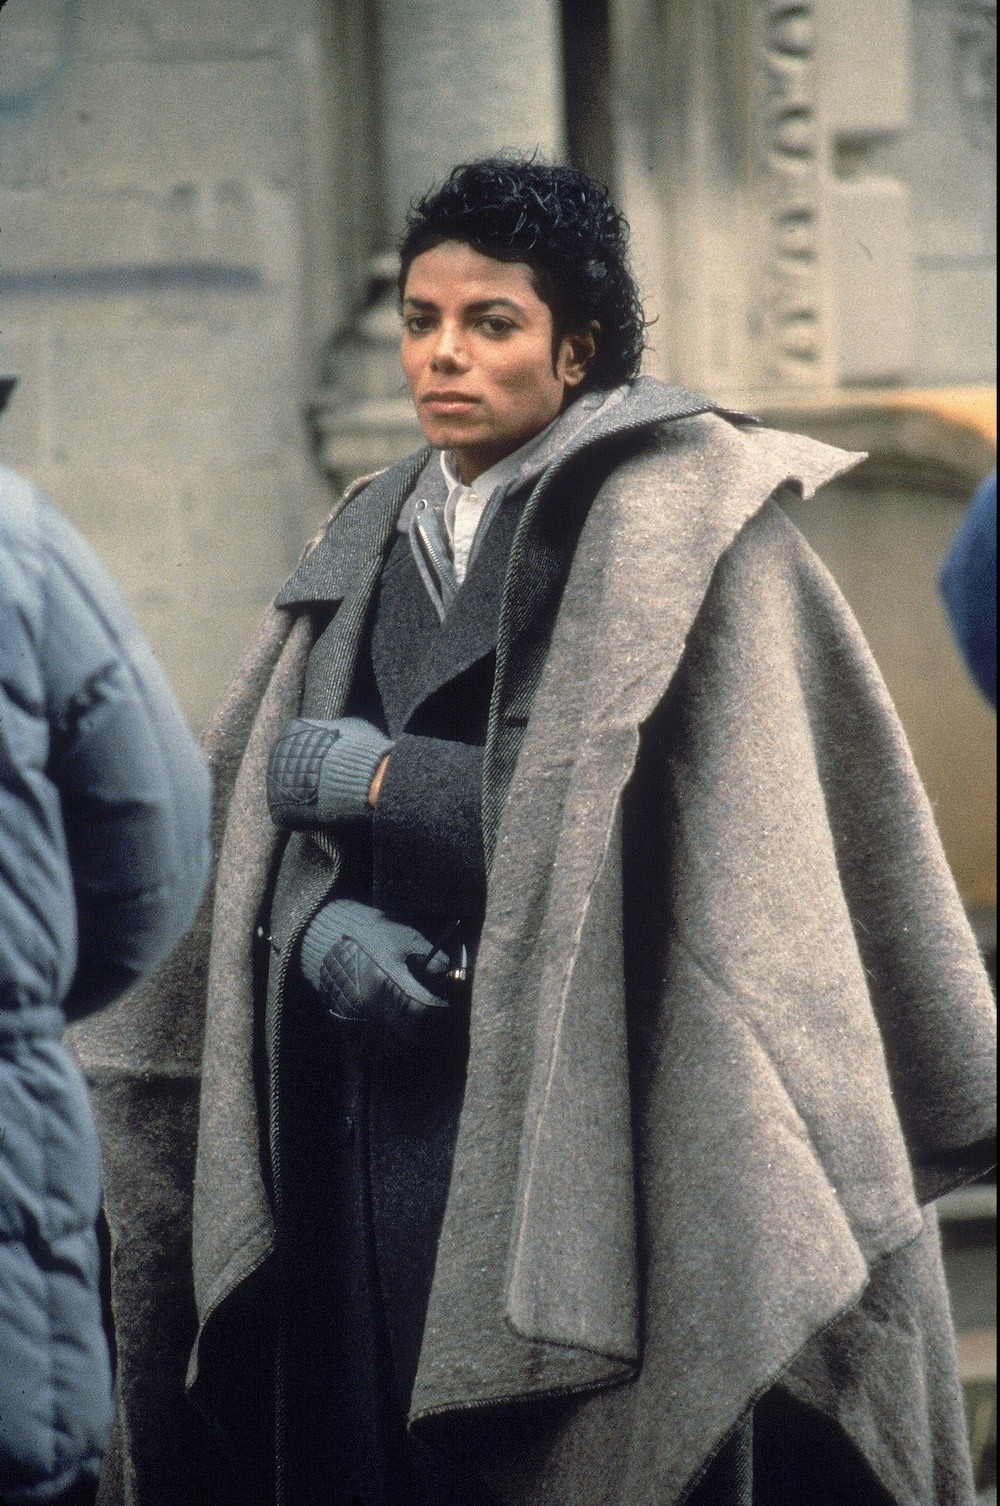 Michael Jackson Films The Video For Bad In 1986 Brooklyn ...